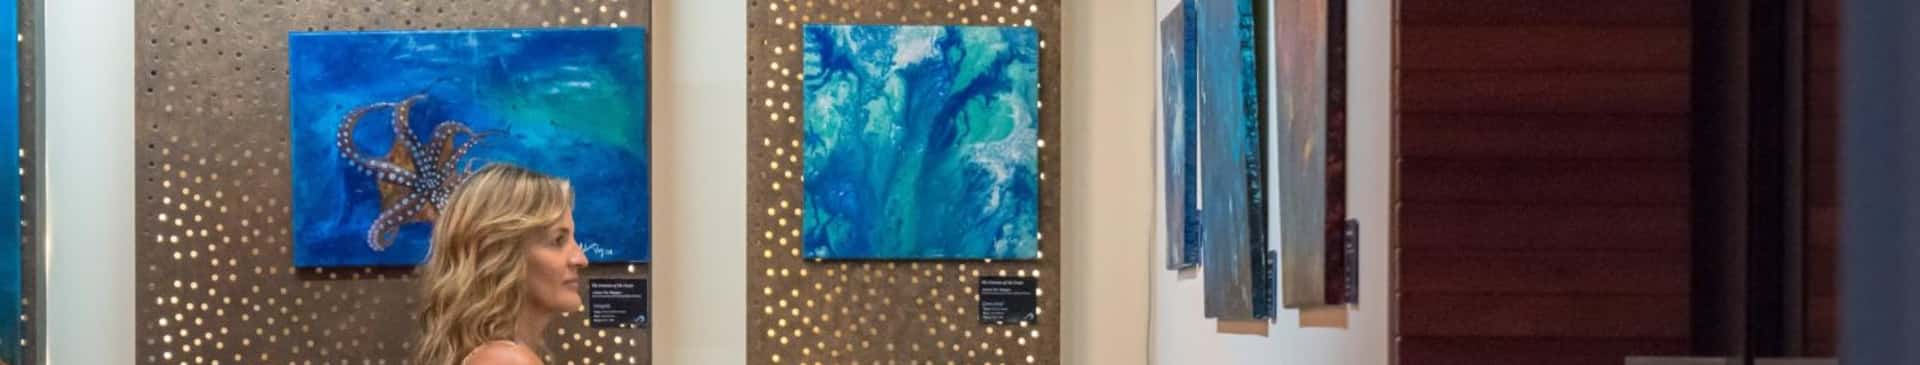 The Emotion of the Ocean art exhibition